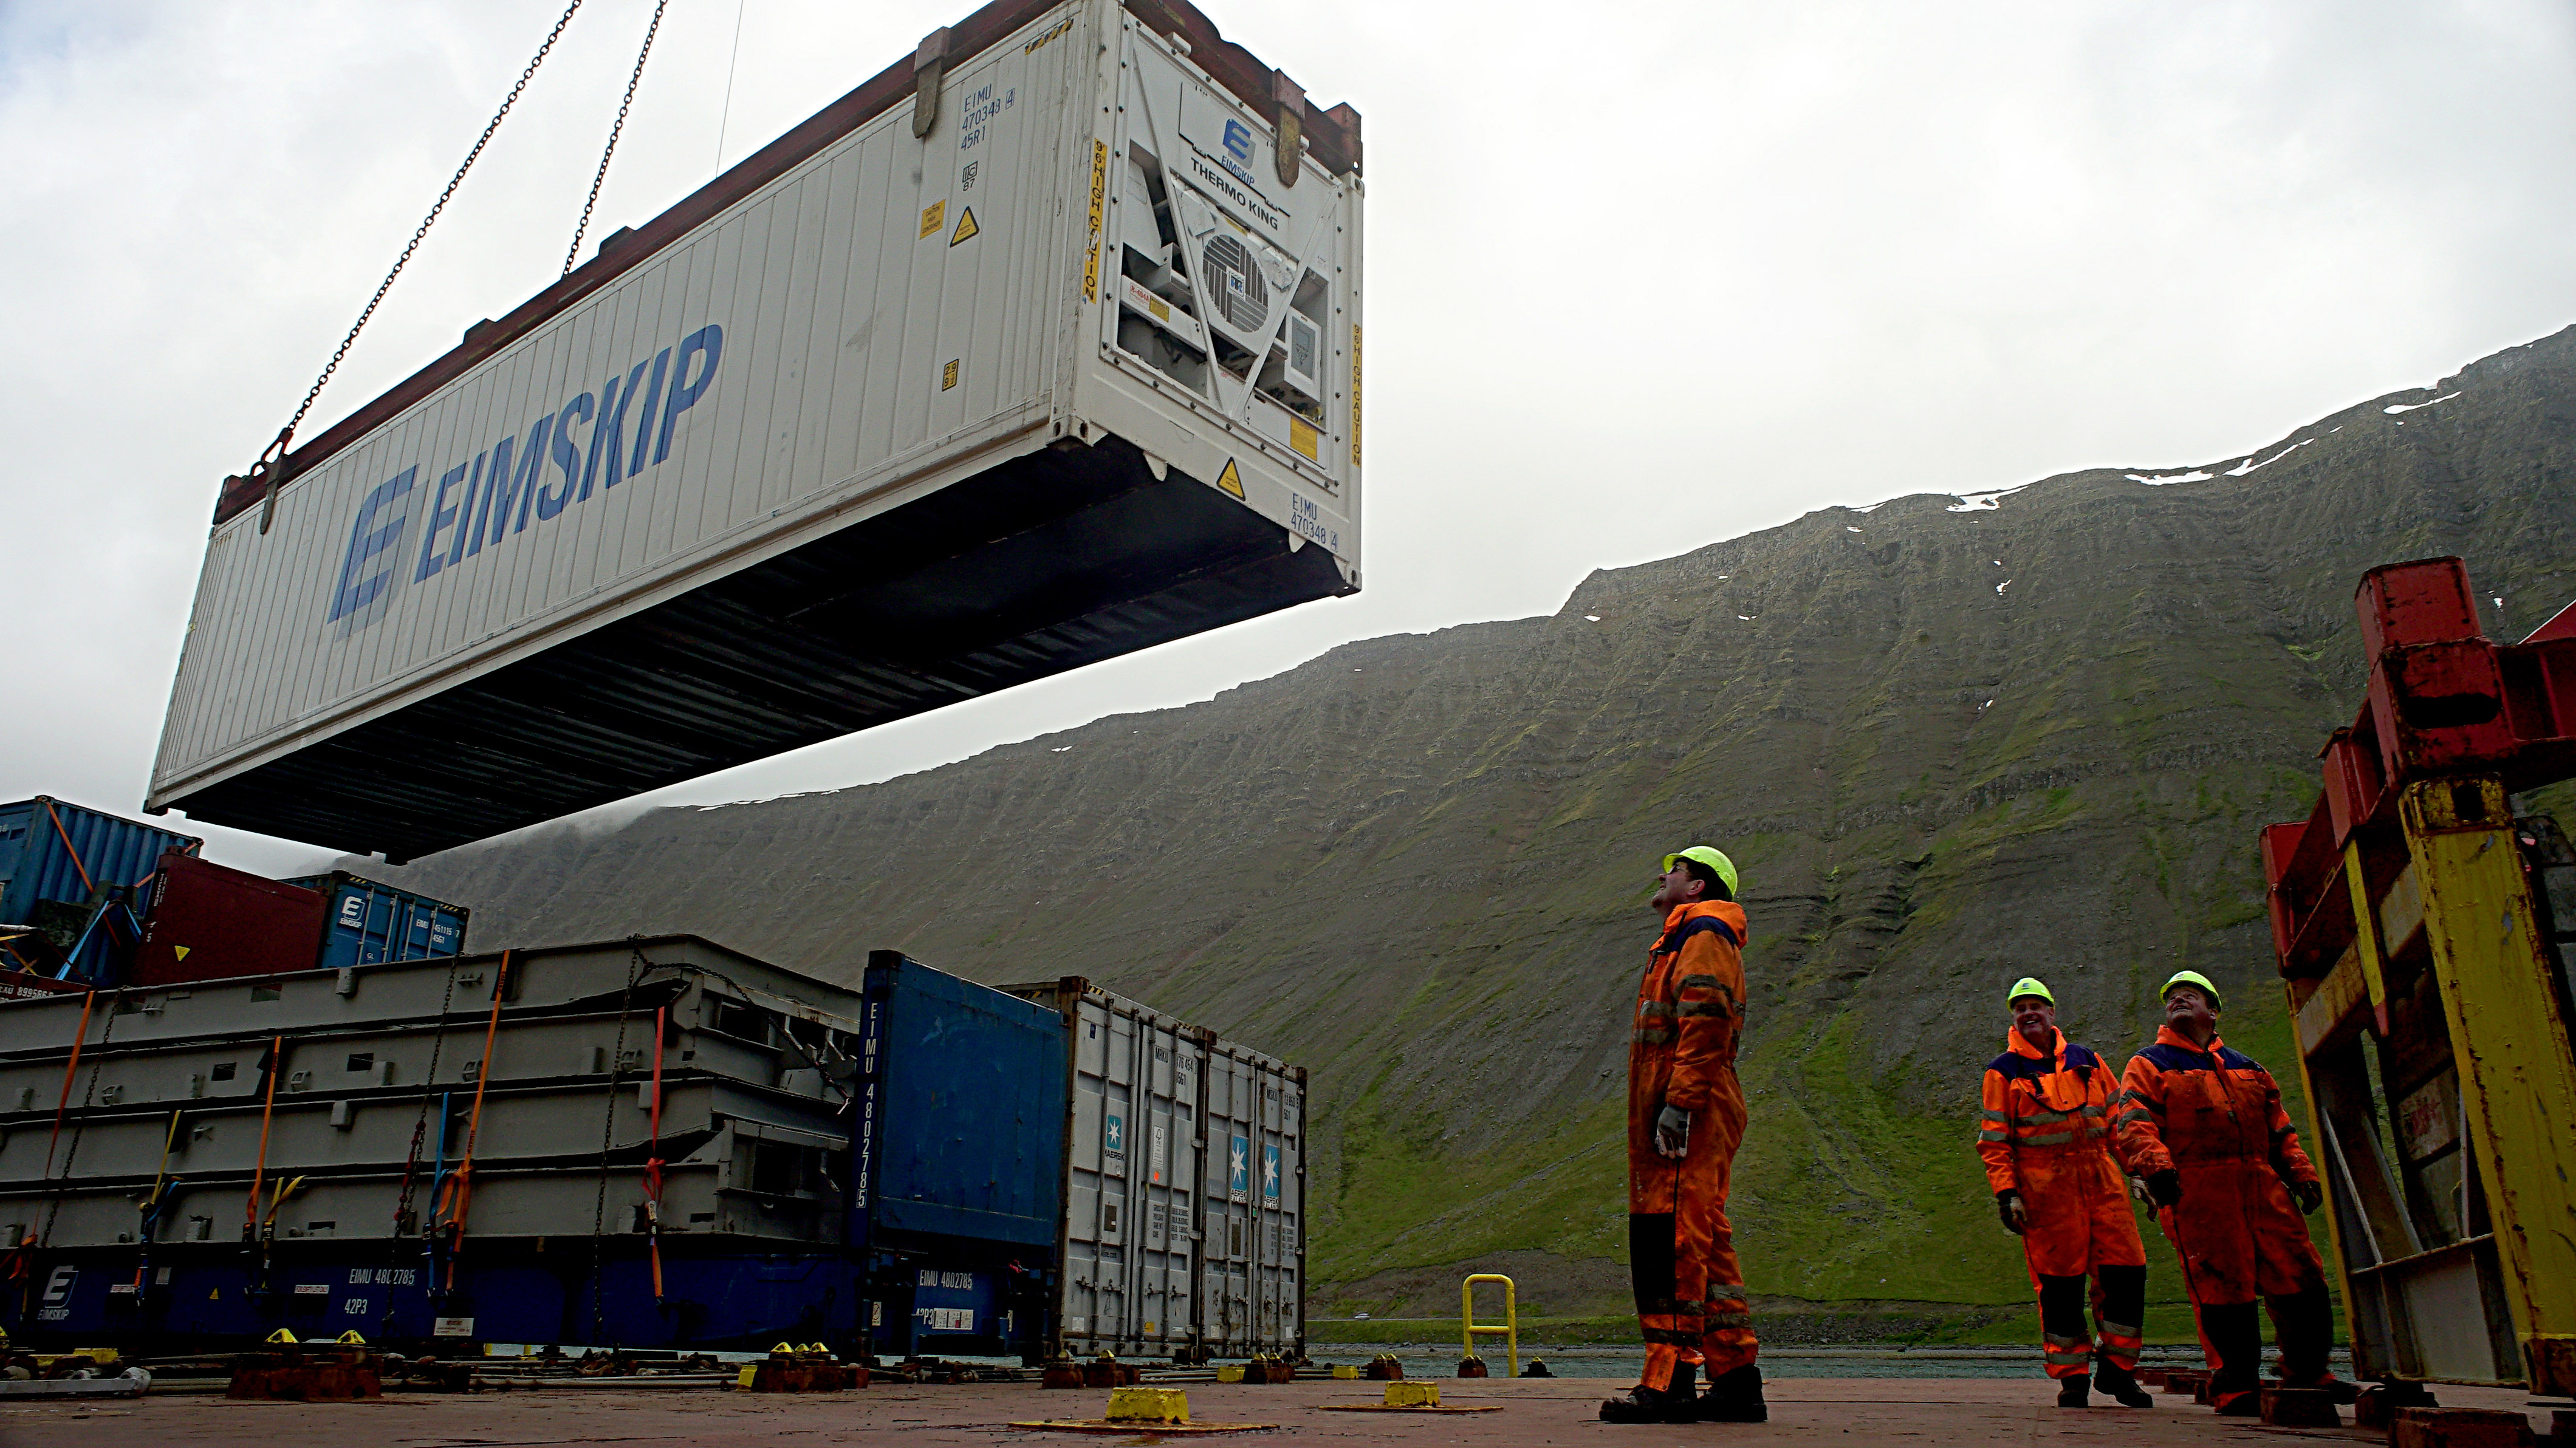 Crew members on the Eimskip vessel Bruarfoss in Isafjordur, Iceland load a refrigerated container packed with fish onto the ship. Maine's interest in the Arctic ramped up in 2013 after Eimskip decided to make Portland its logistical hub for North America. The move provided Maine businesses with access to its trade network in the North Atlantic. The niche steamship line, which specializes in moving frozen fish, gives Maine exporters and importers a direct connection to Newfoundland, Iceland, England, the Netherlands and indirect connections to Greenland, Scandinavia and as far north as Murmansk, Russia. (Tom Bell)